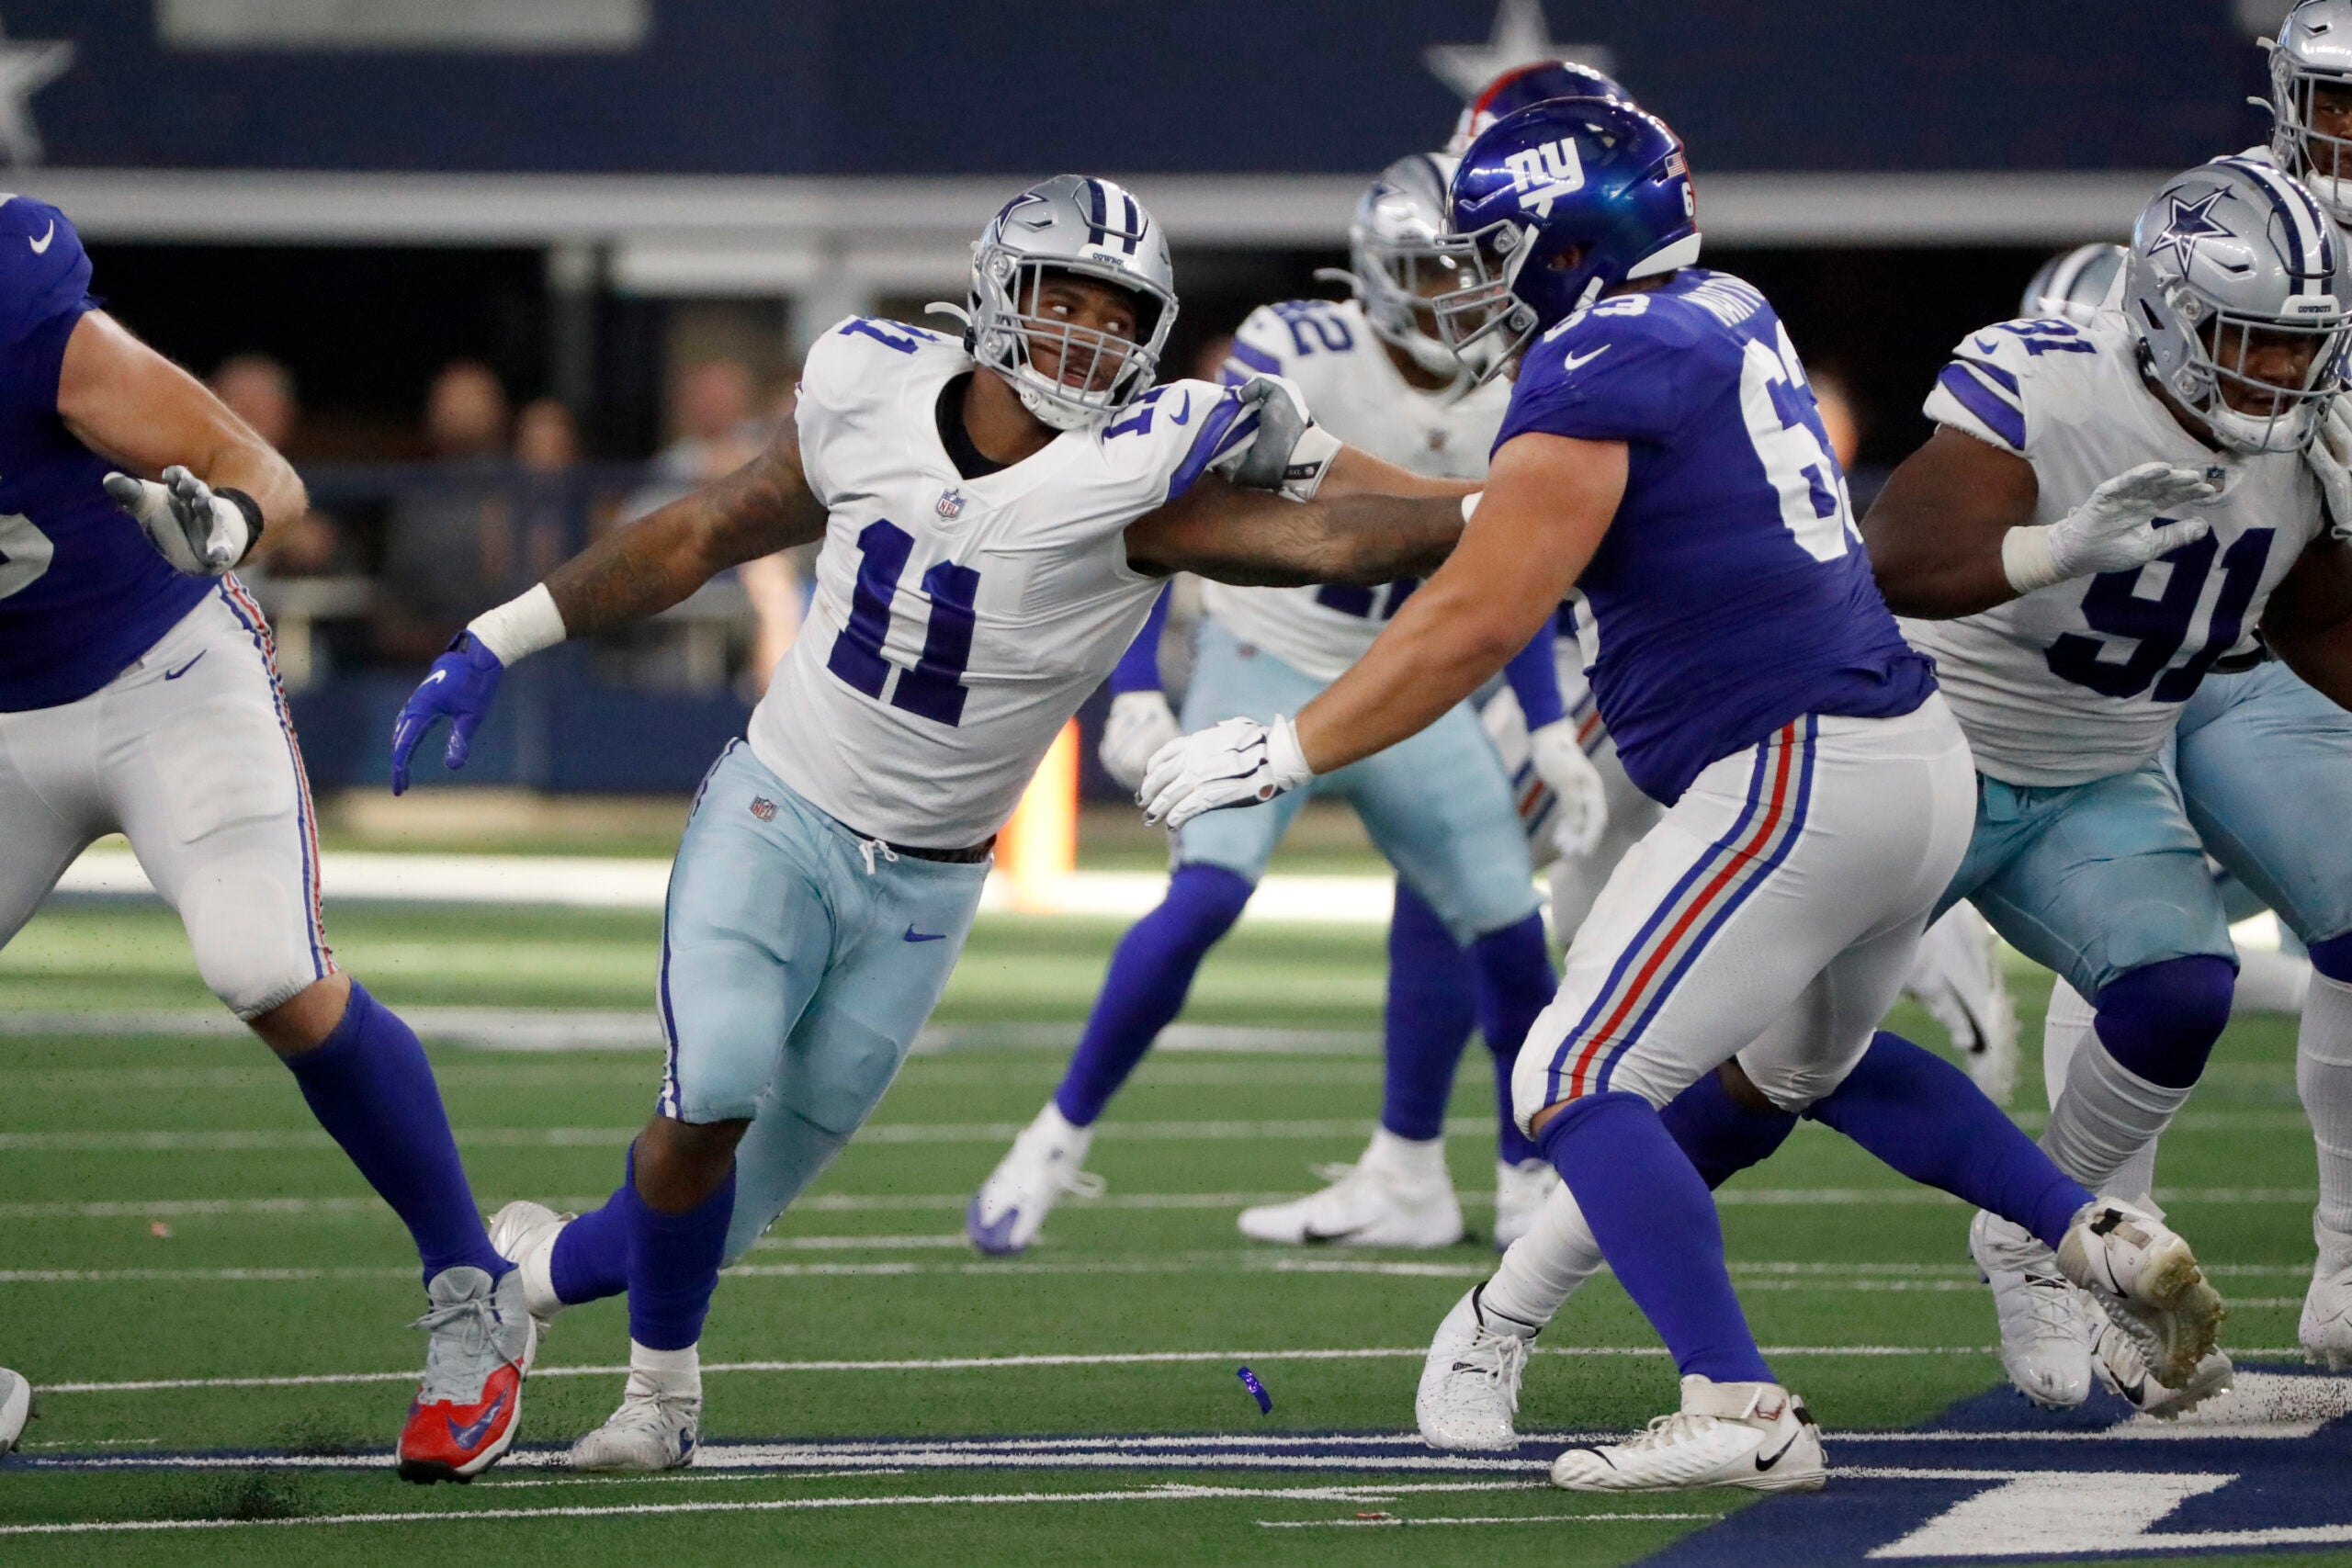 4 Cowboys players to watch against the Patriots